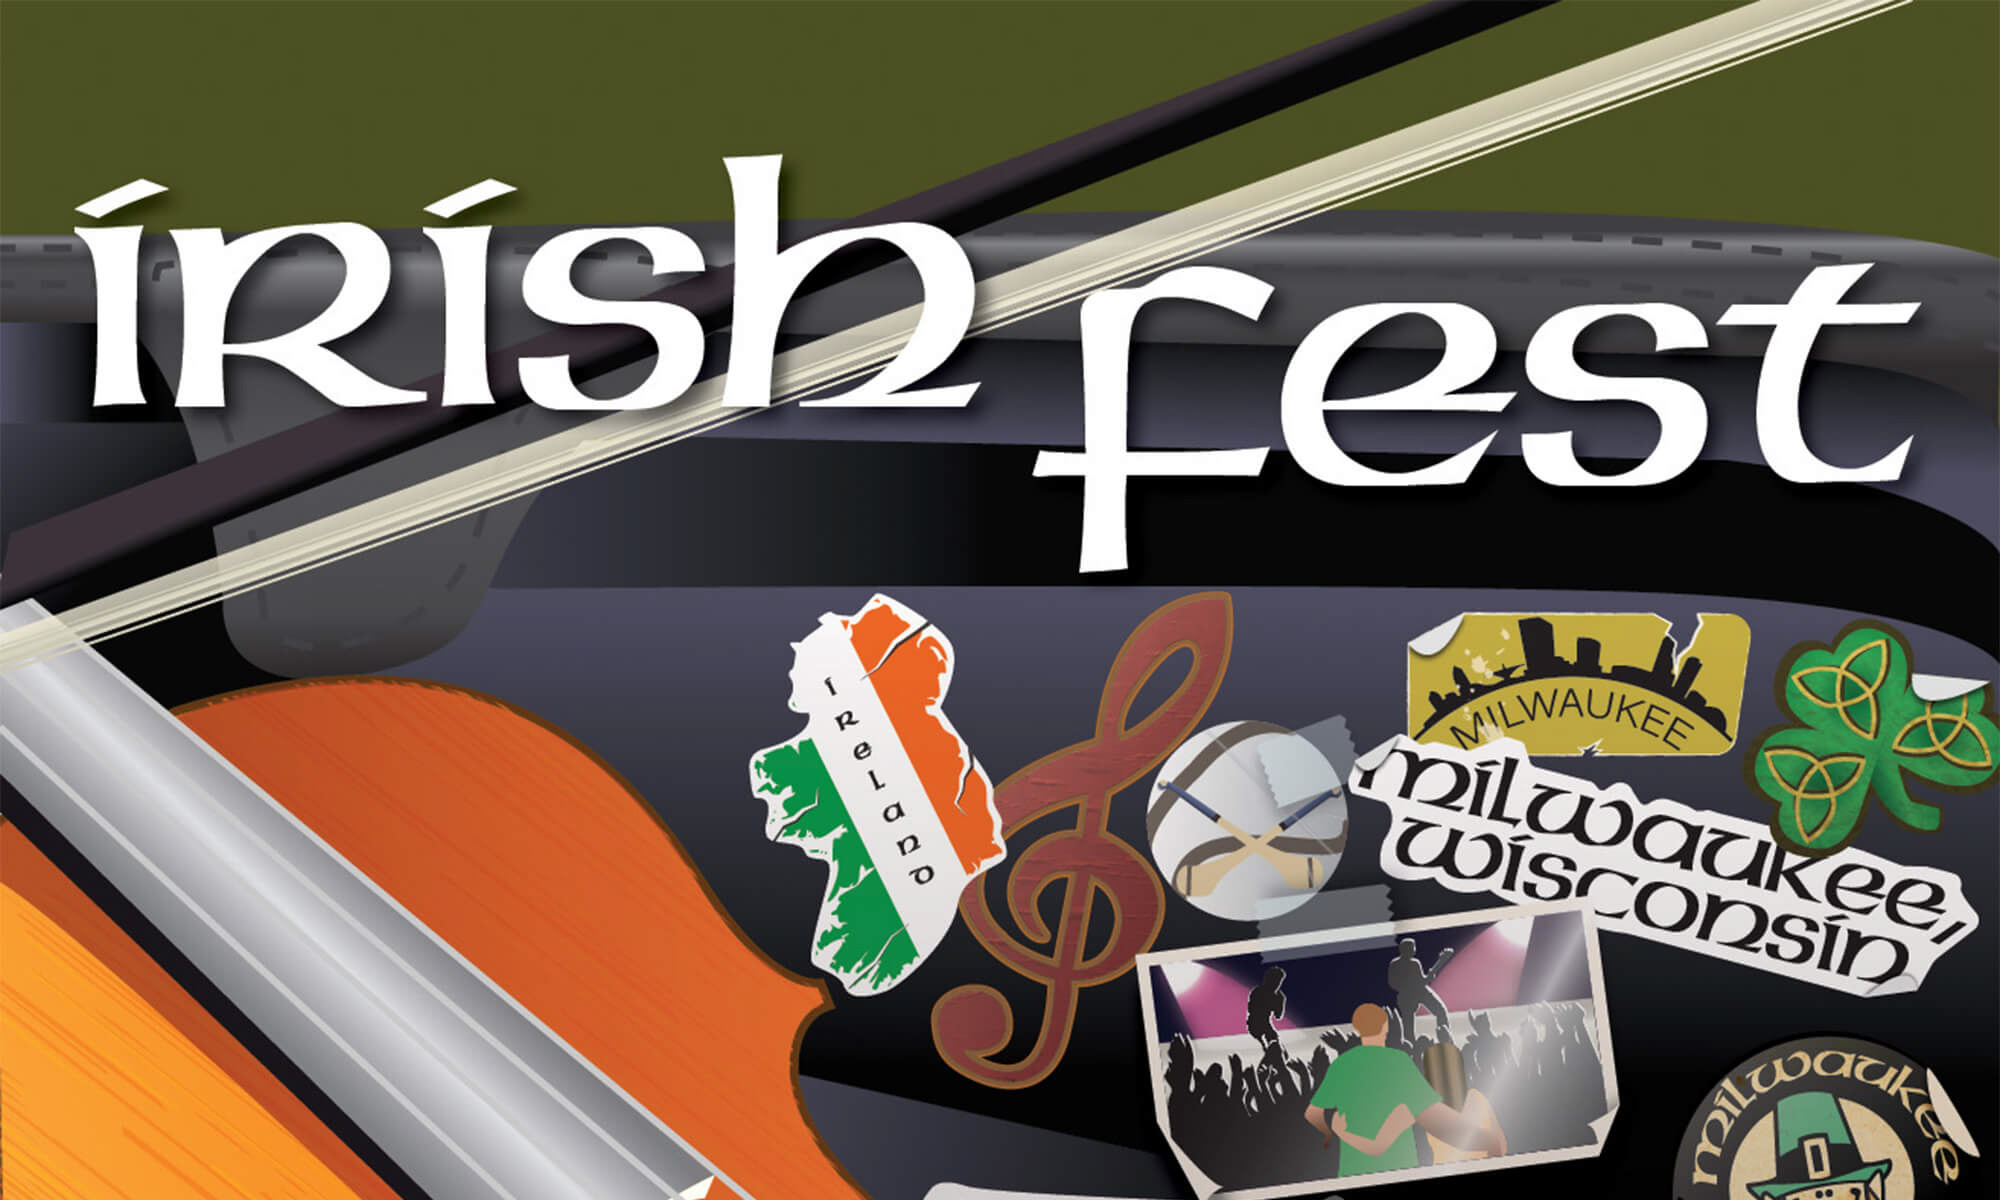 Milwaukee Irish Fest poster